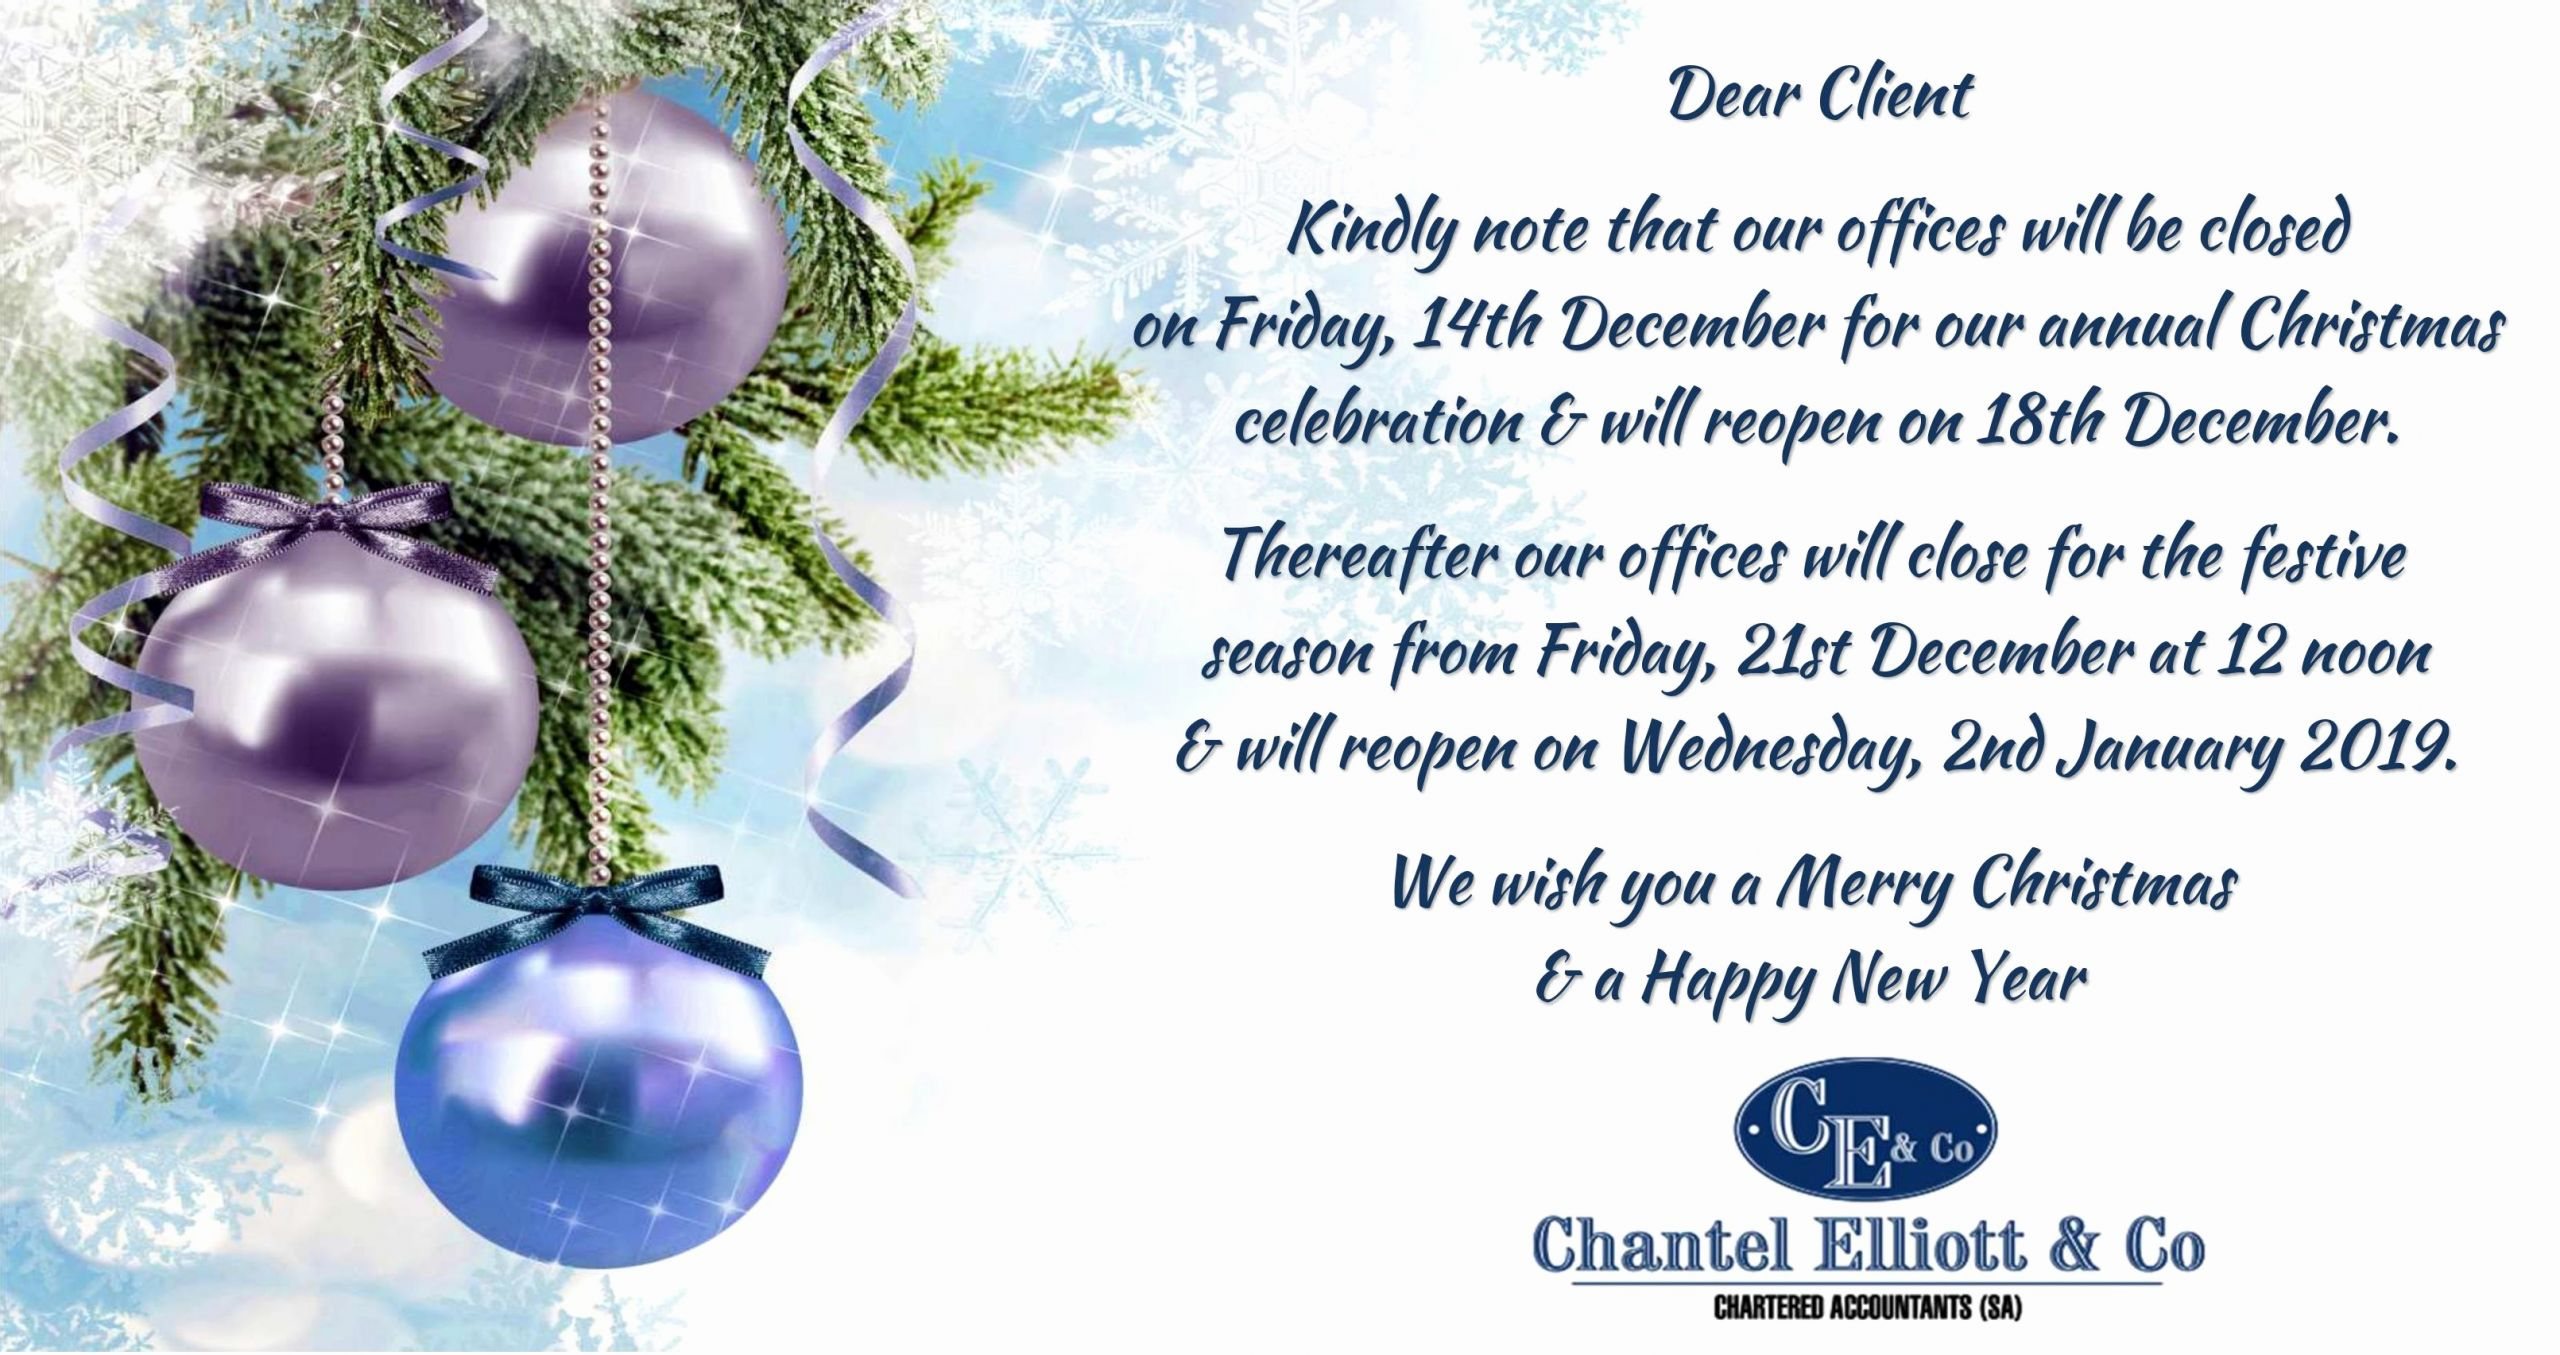 Holiday Closing Notice Template Fresh Chantel Elliott